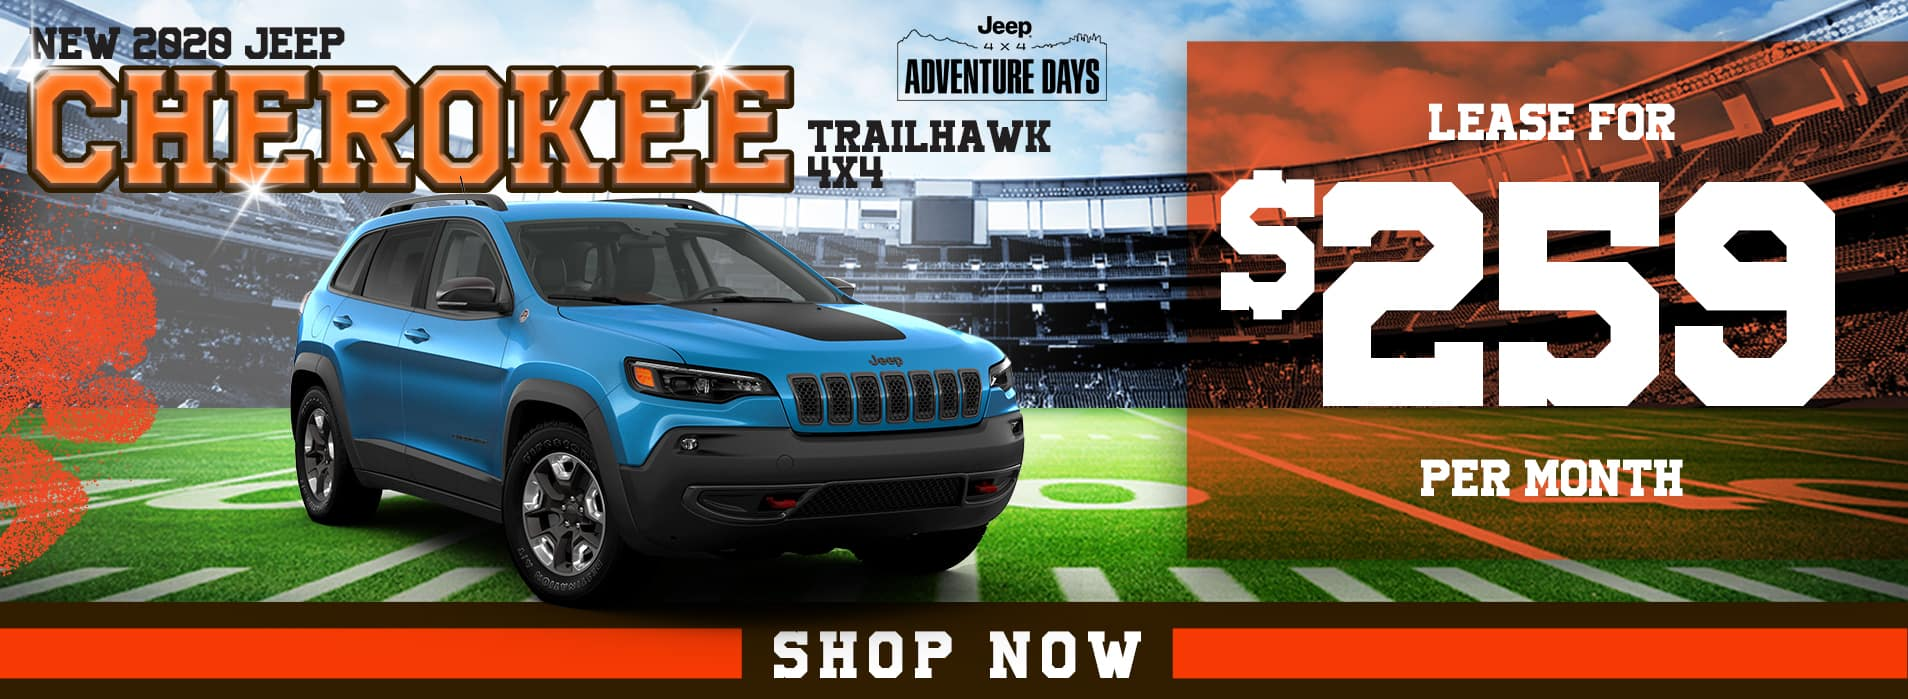 2020 Jeep Cherokee trailhawk 4x4 Lease for $259 per month